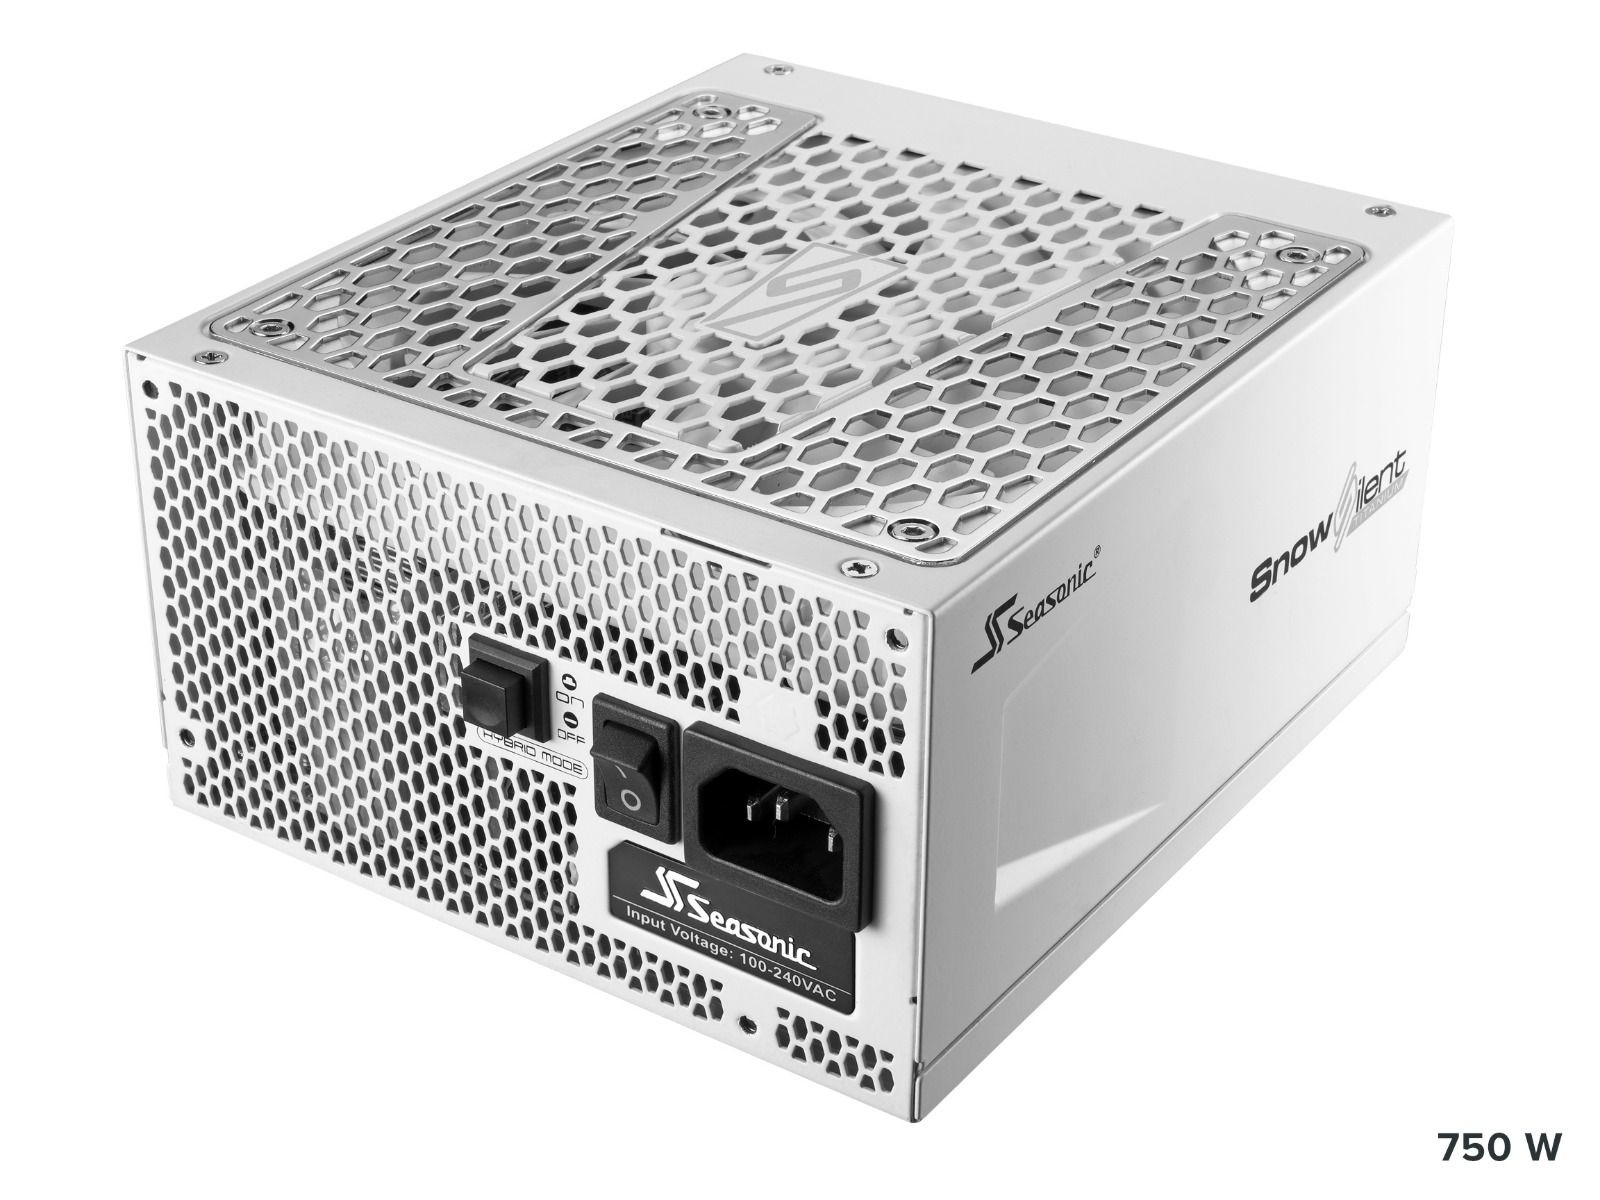 Seasonic Releases Prime SnowSilent White PSUs with 12 Year Warranty